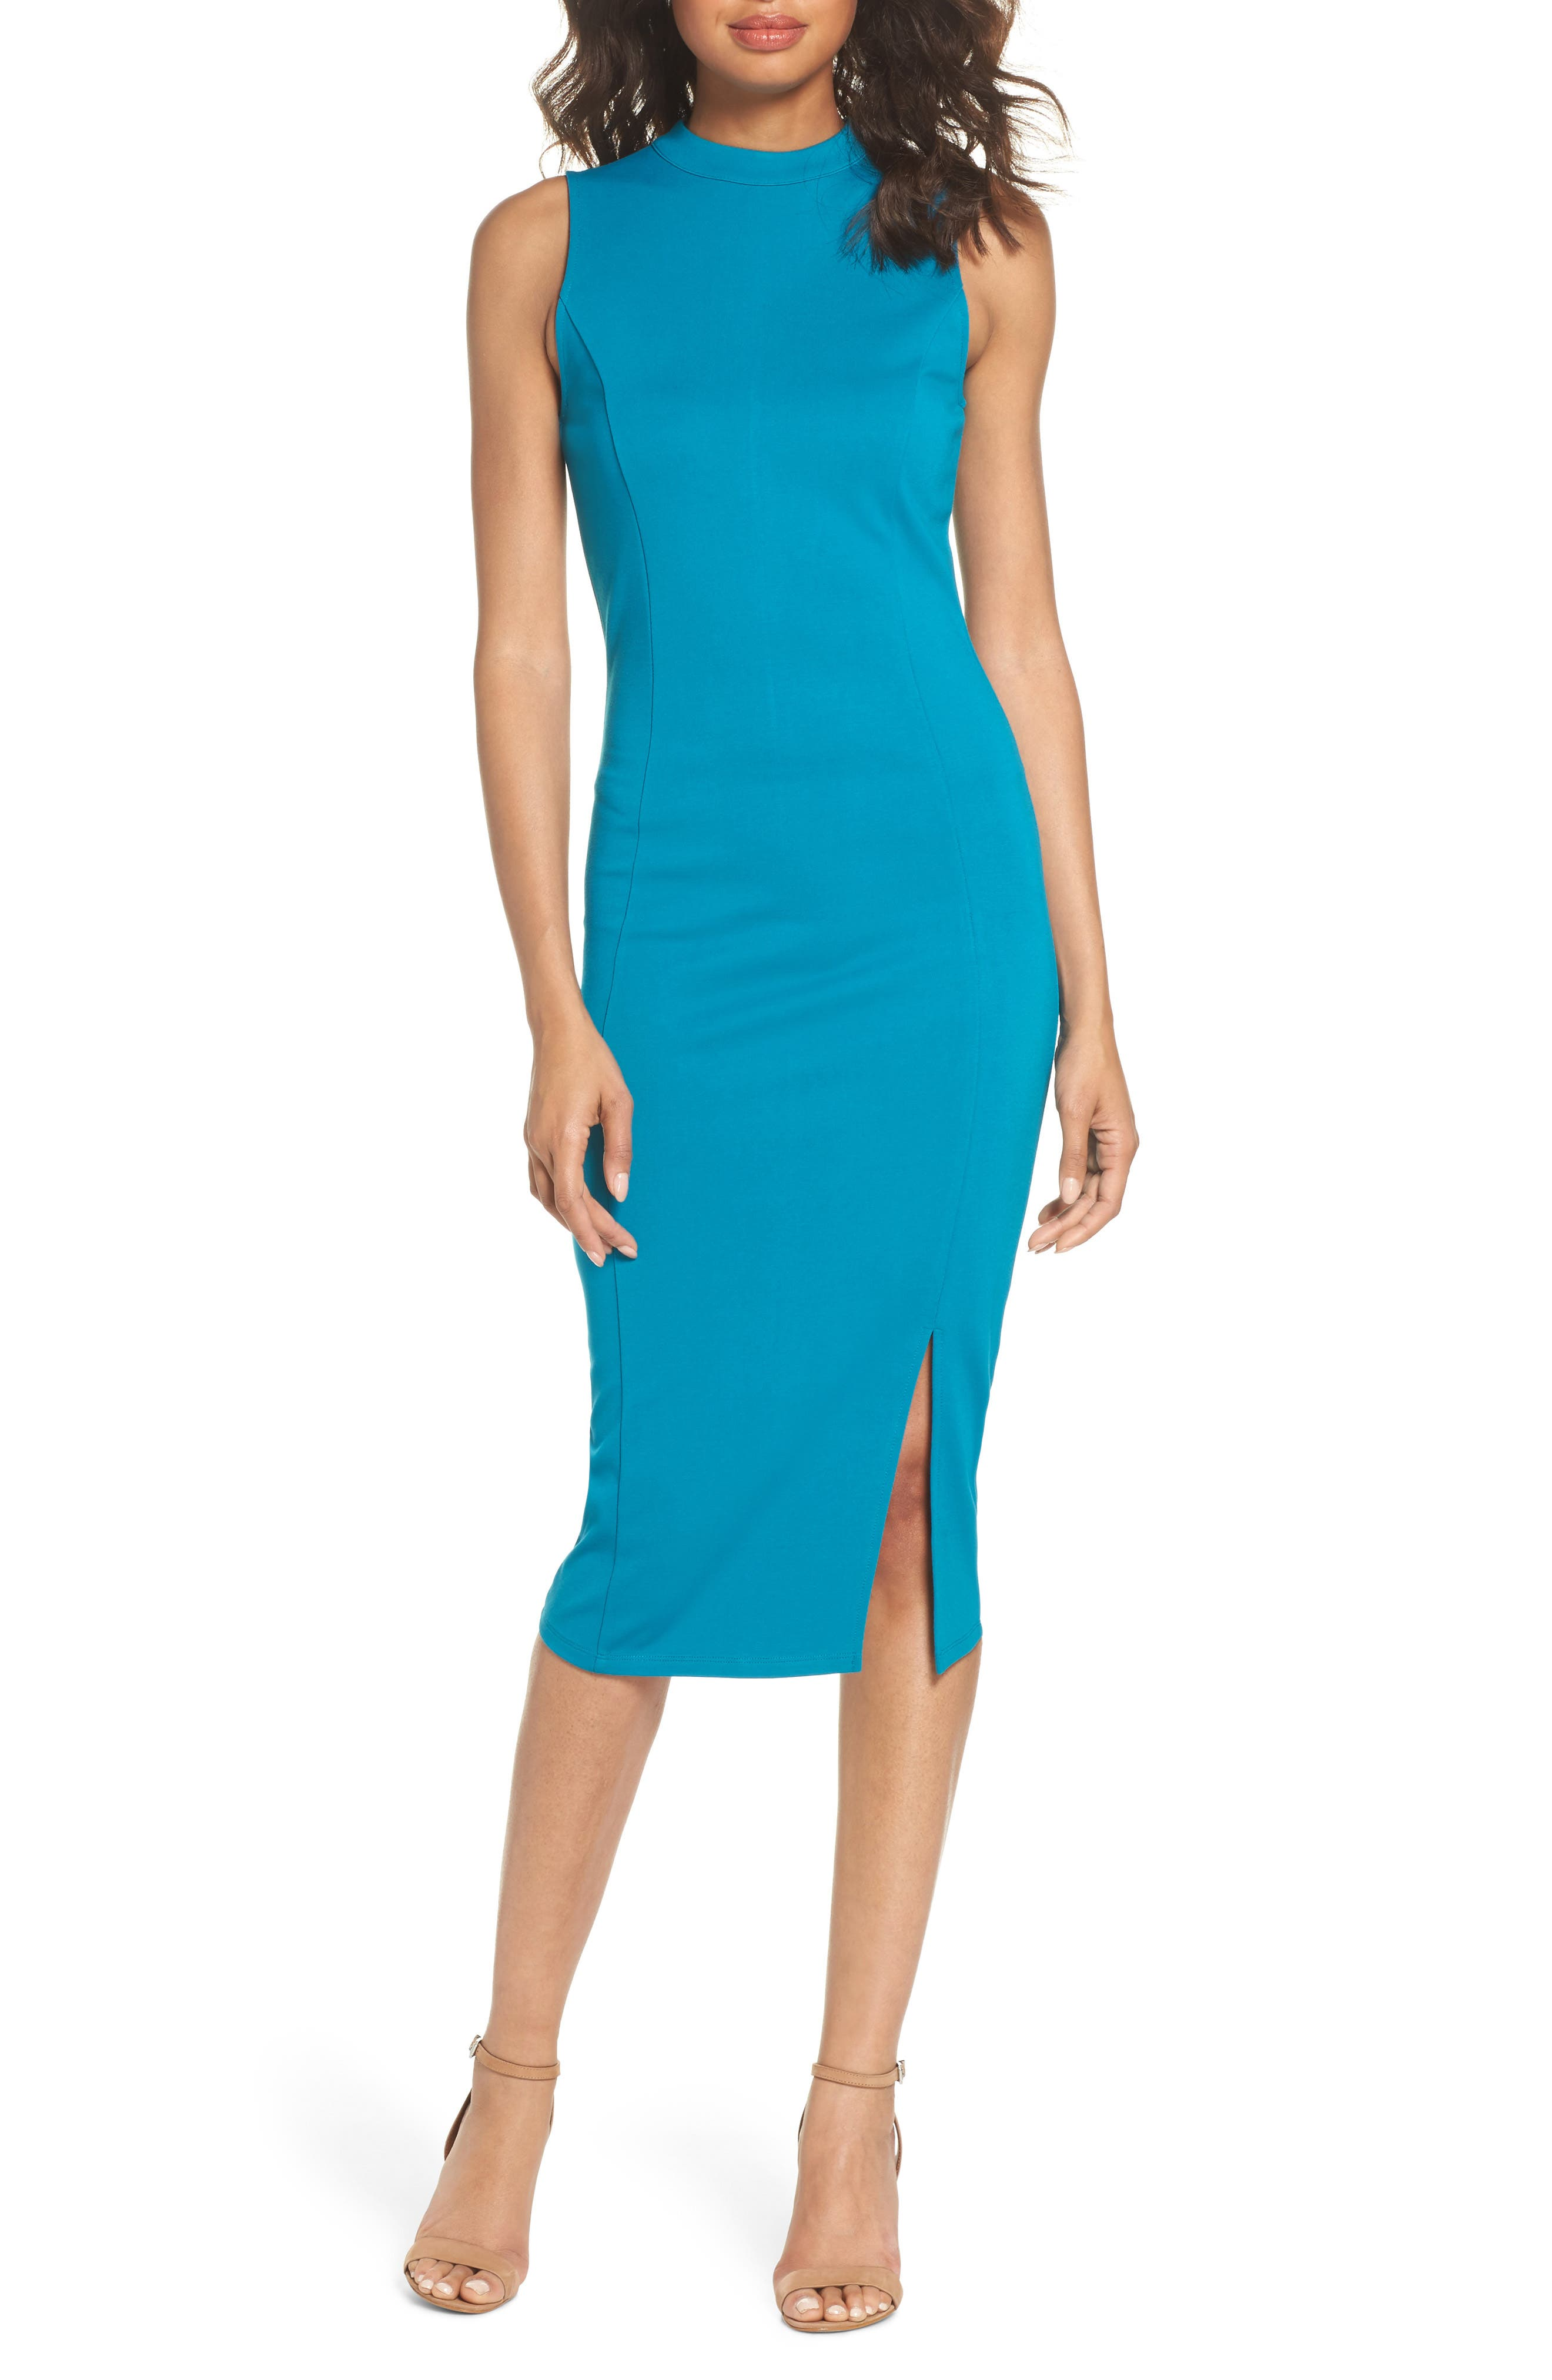 Alternate Image 1 Selected - Felicity & Coco Pepa Mock Neck Sheath Dress (Nordstrom Exclusive)